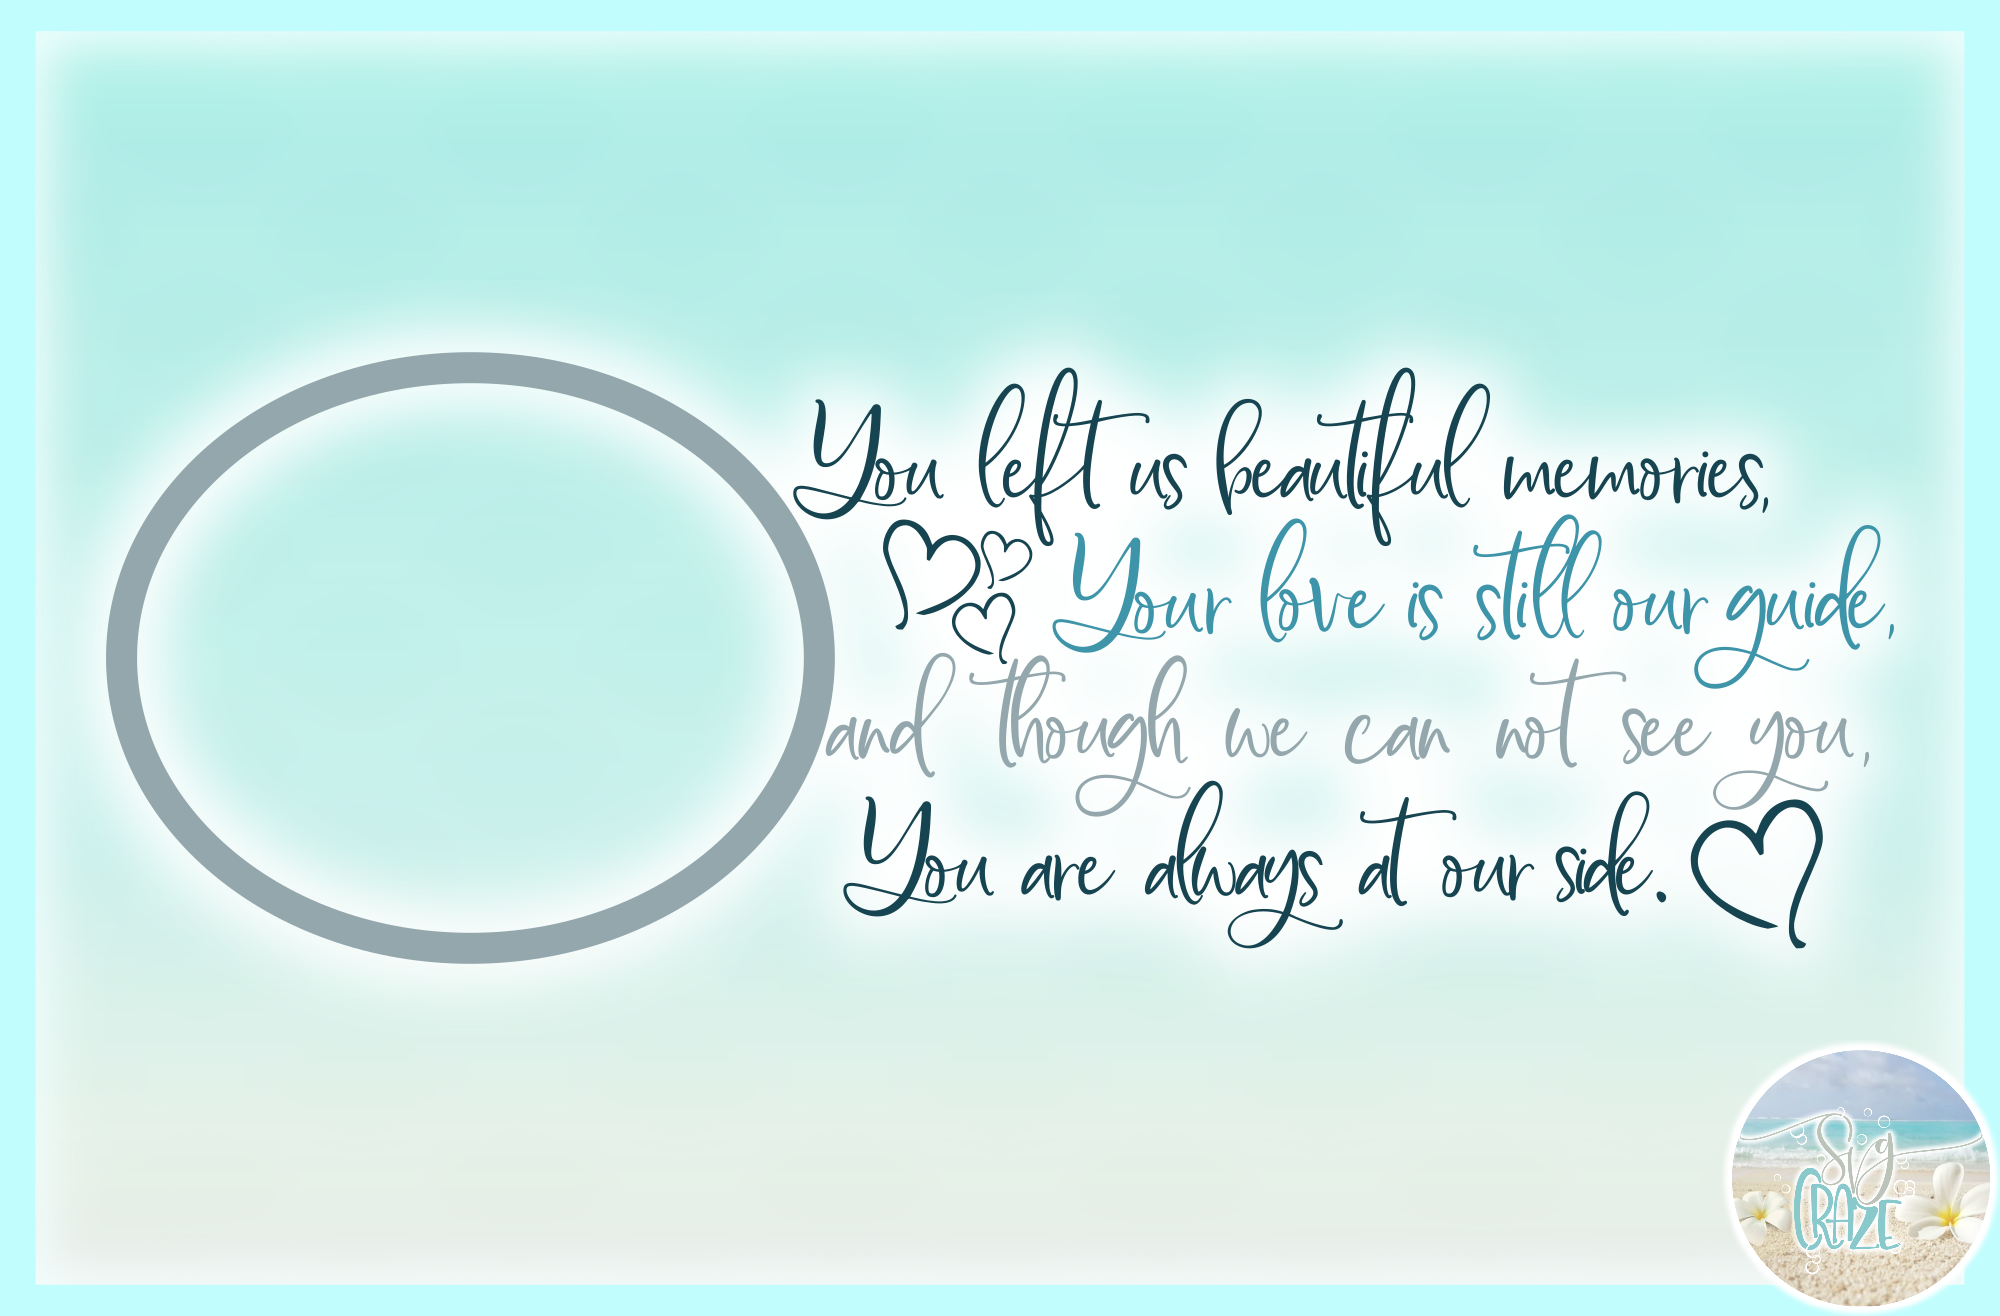 Your Life Gave Us Beautiful Memories Always At Our Side SVG example image 3